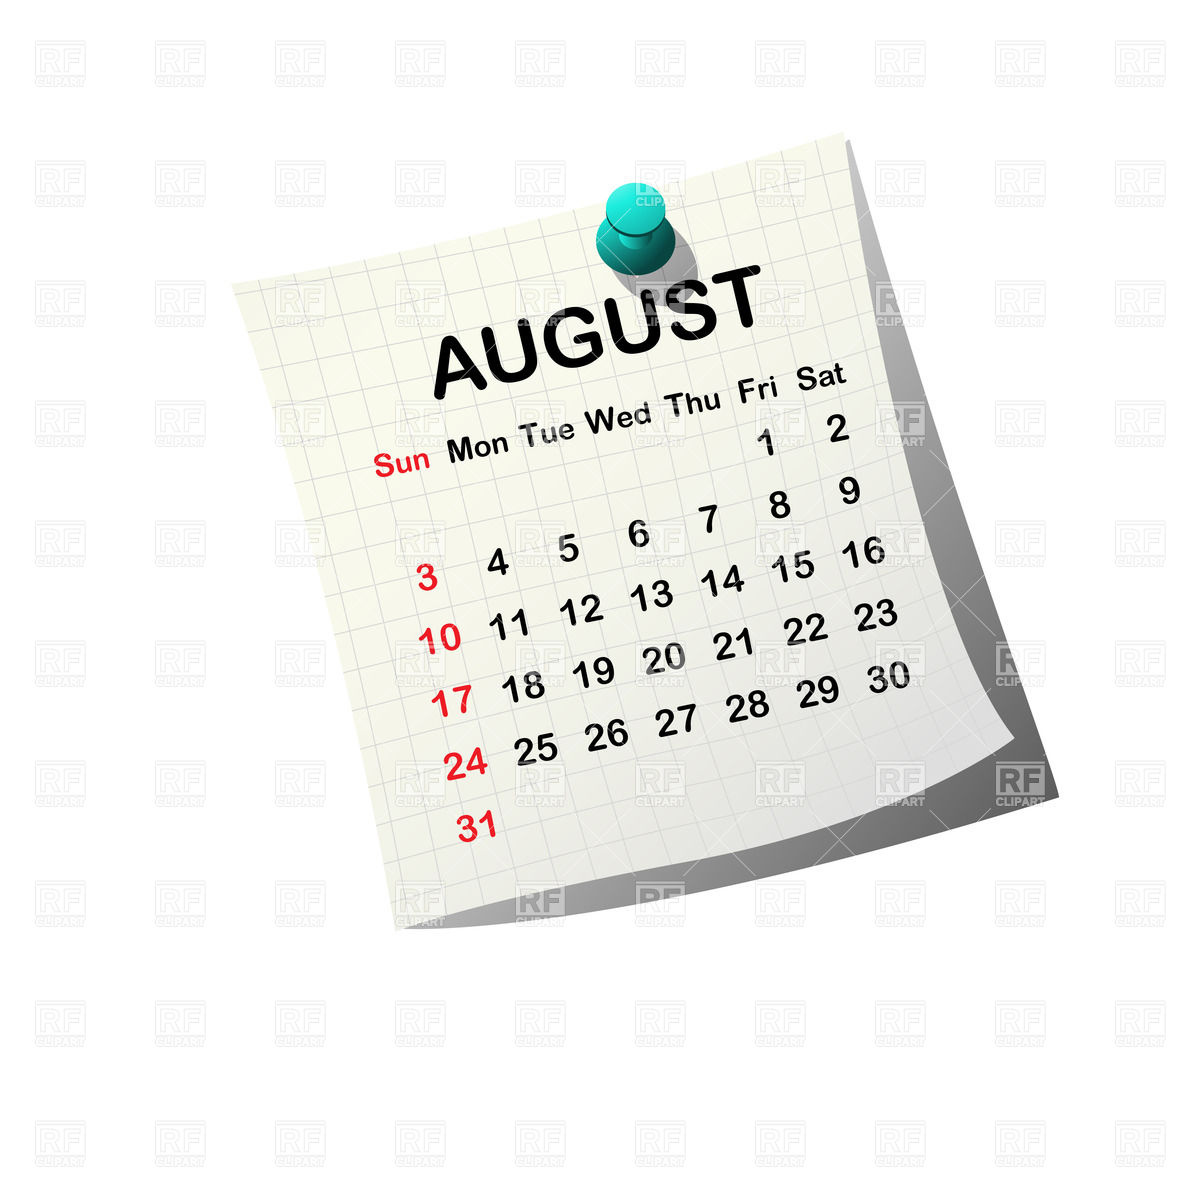 August 2014 calendar clipart free library August Calendar Clipart - Clipart Kid free library